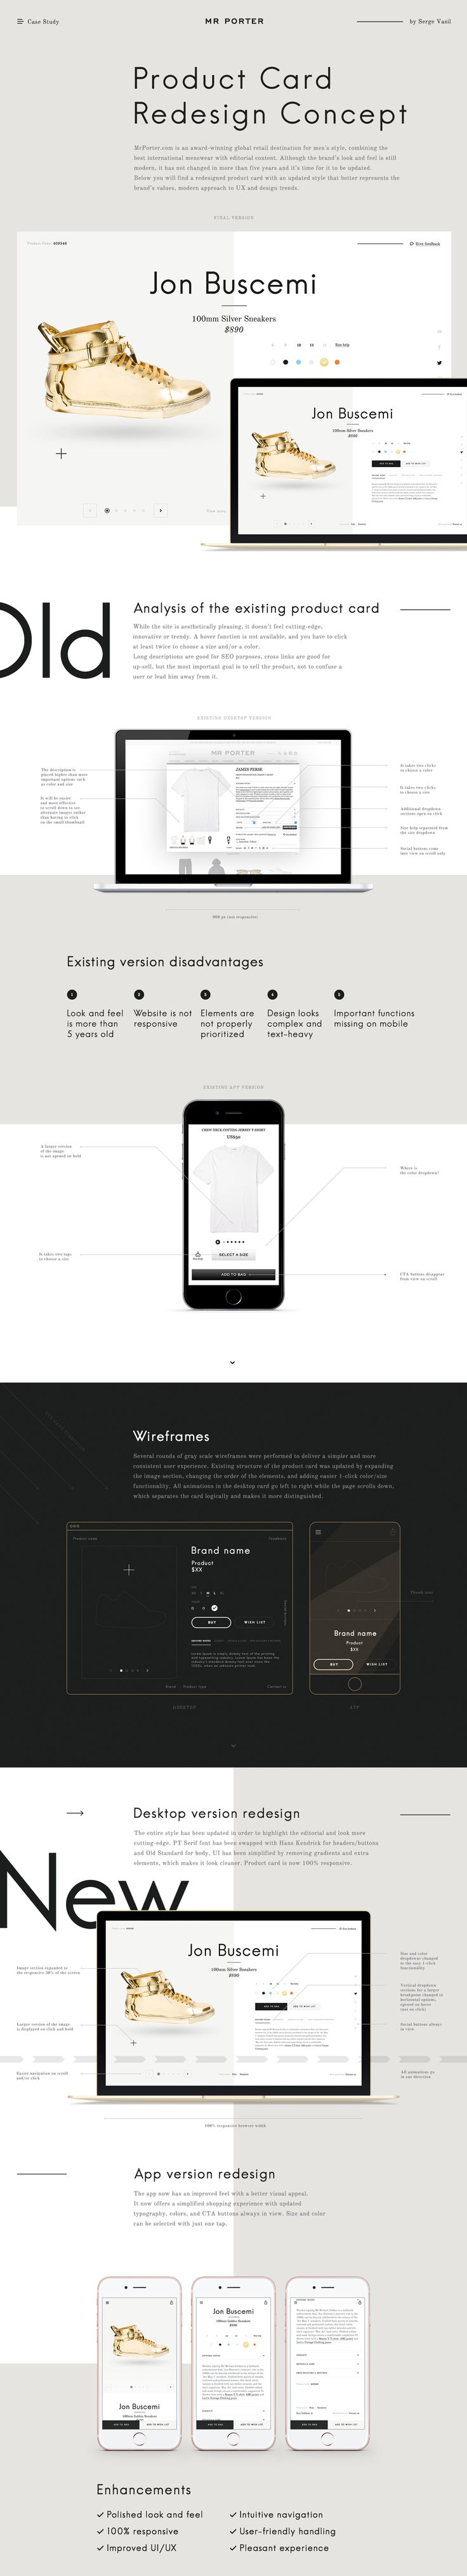 Case Study: MrPorter Product Card Redesign Concept on Behance